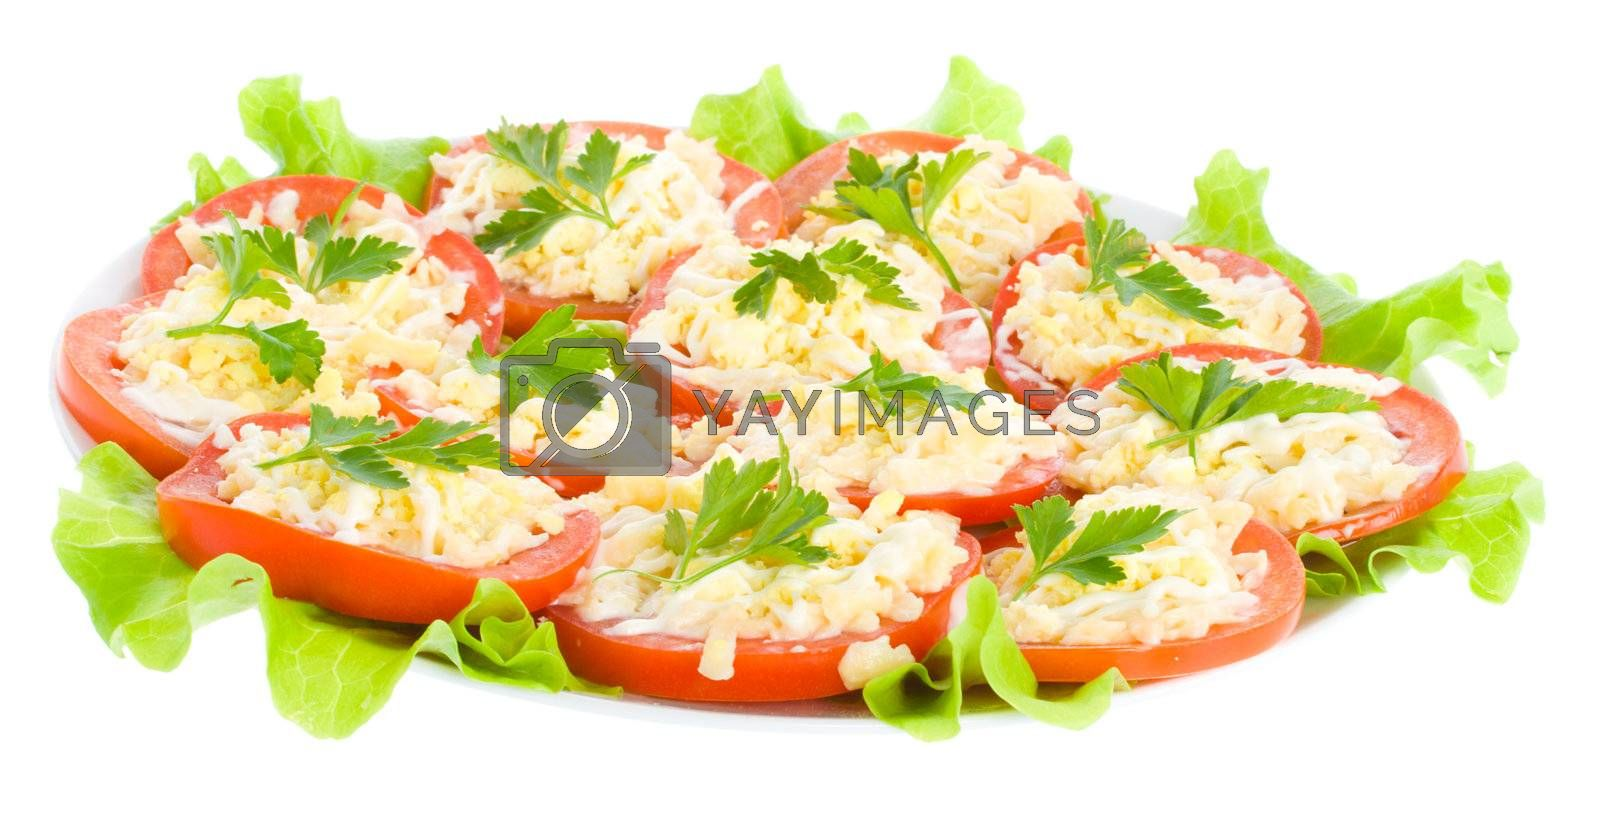 stuffed tomatoes with cheese and garlic, isolated on white